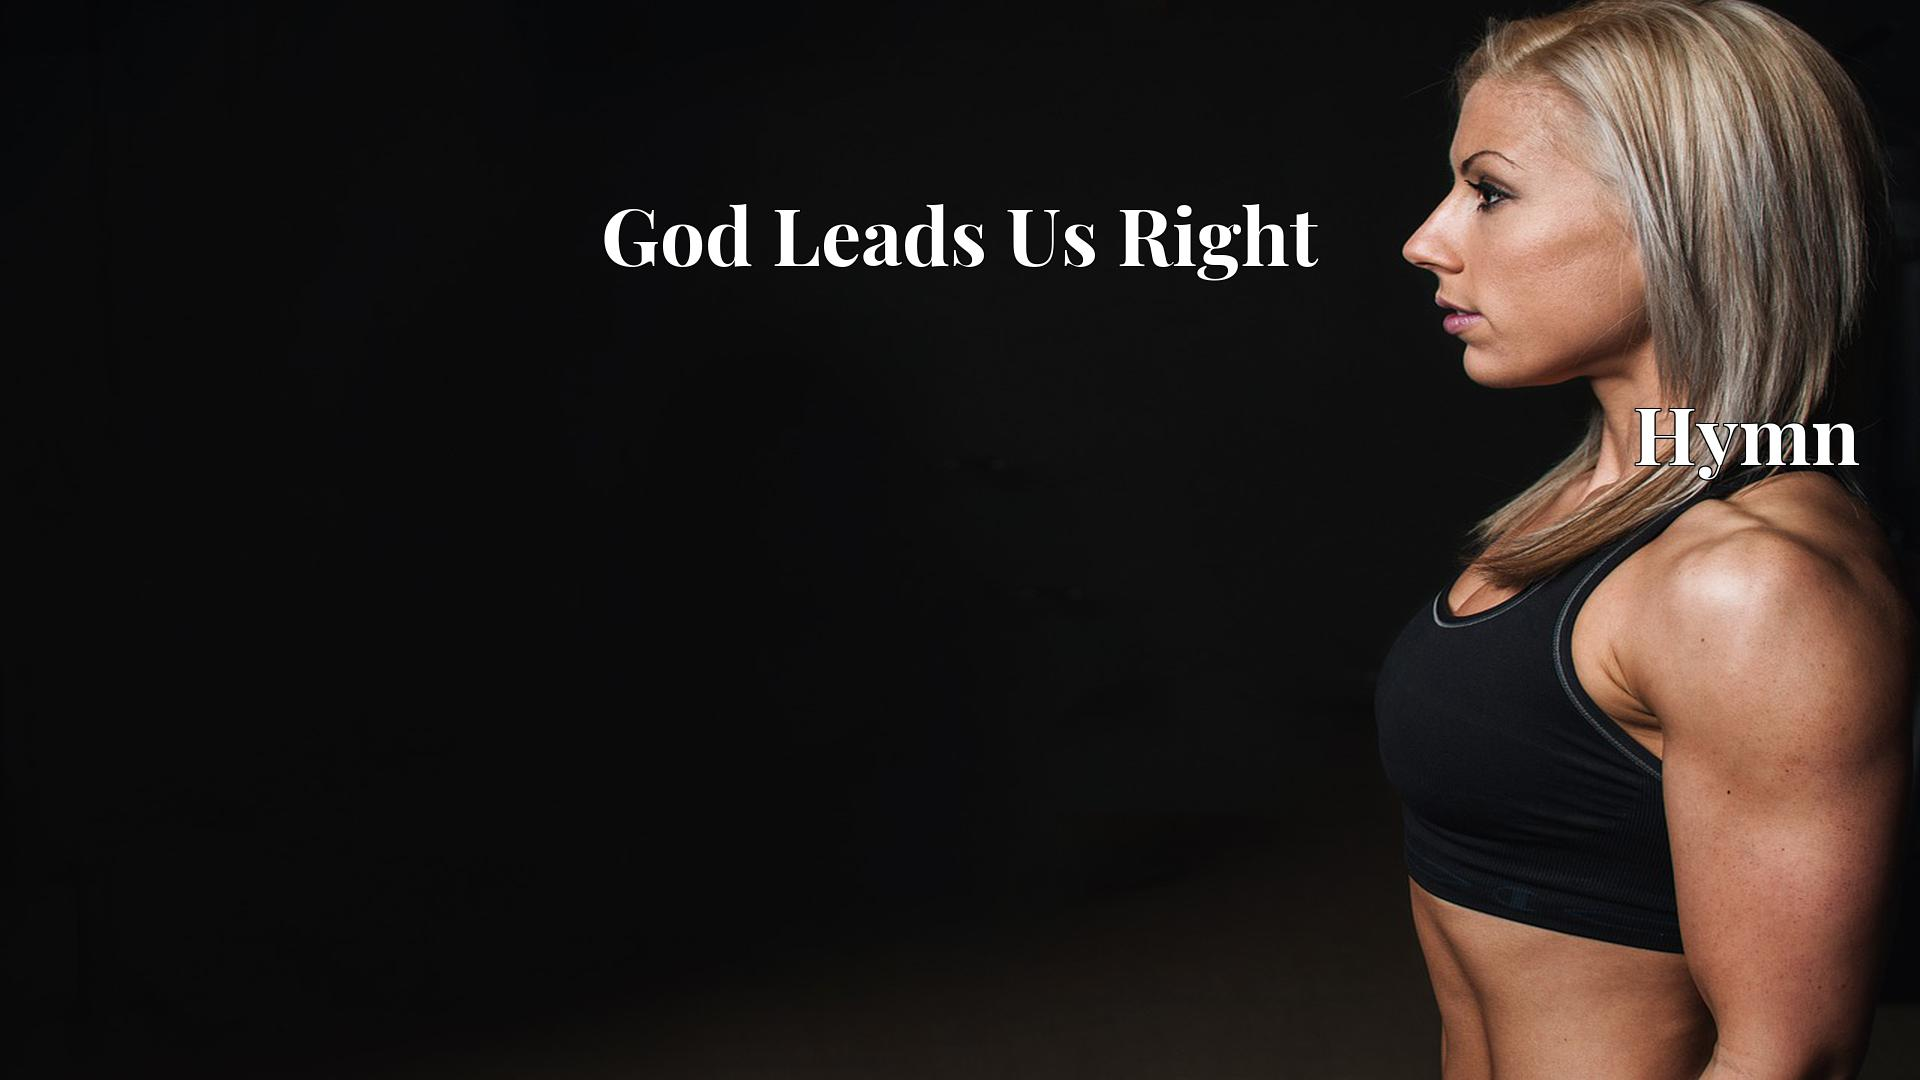 God Leads Us Right - Hymn